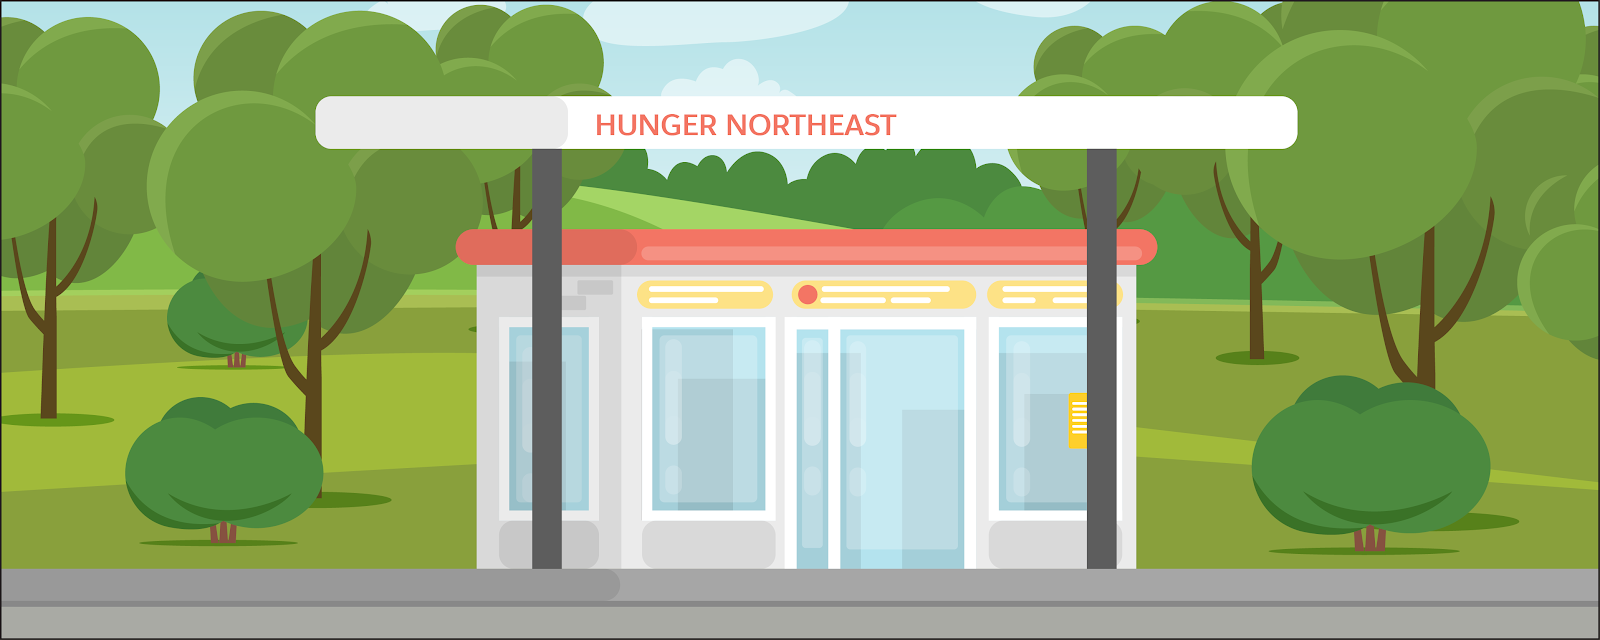 Hunger Northeast is a small food pantry in a rural area run out of a converted gas station.